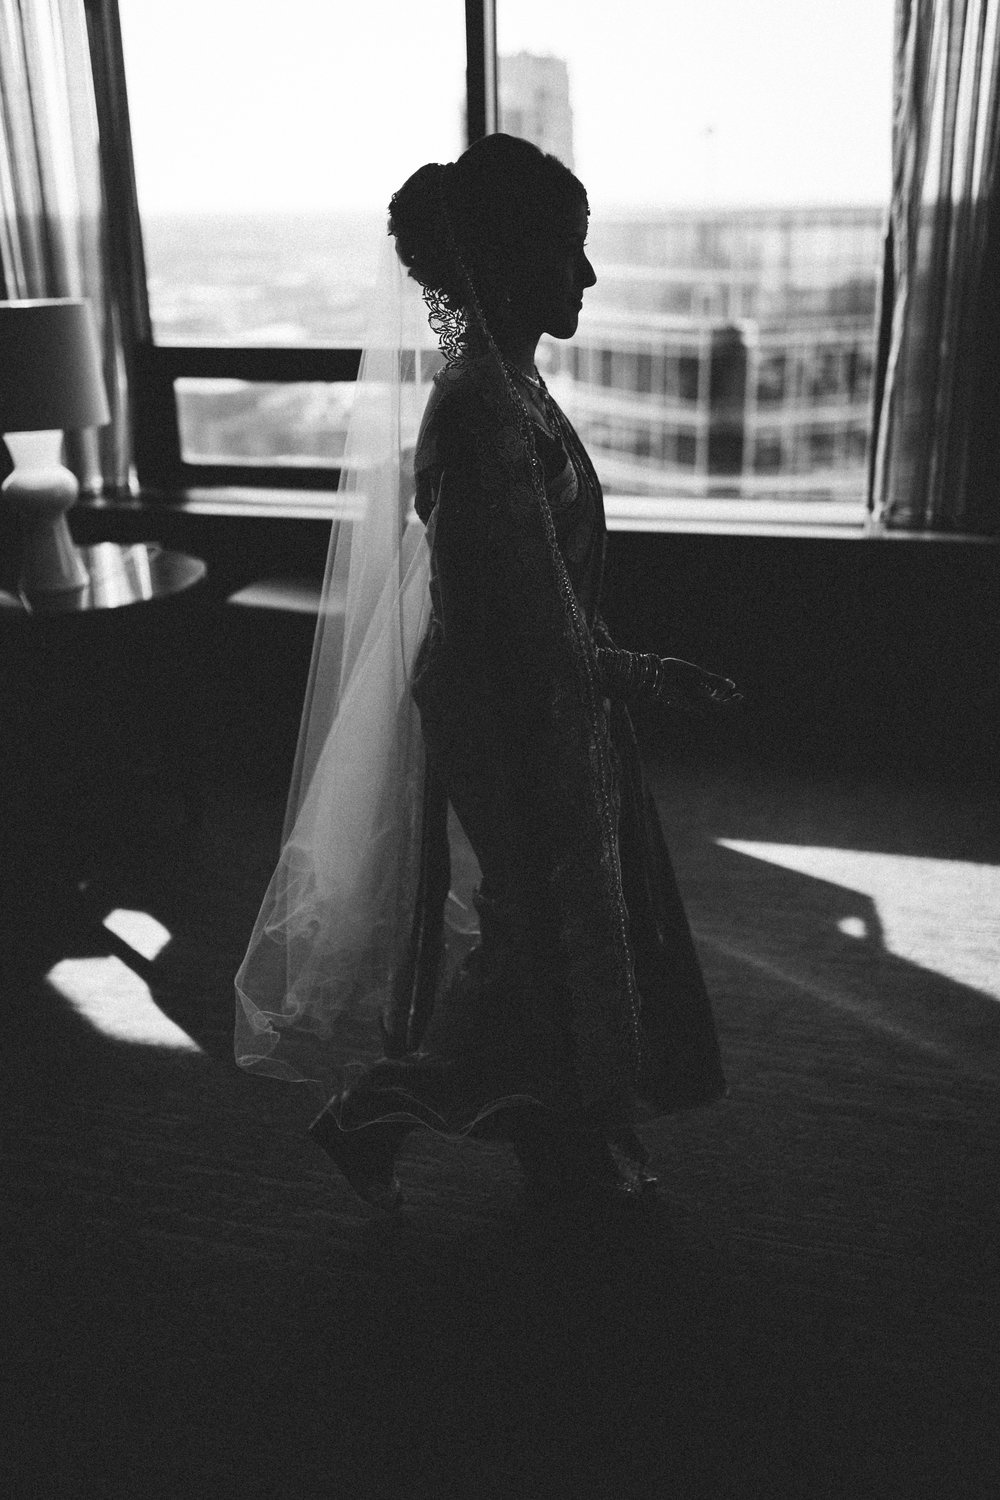 RoopaRyan-ShadowShinePictures-WeddingPhotograhyPreviews-0180.jpg